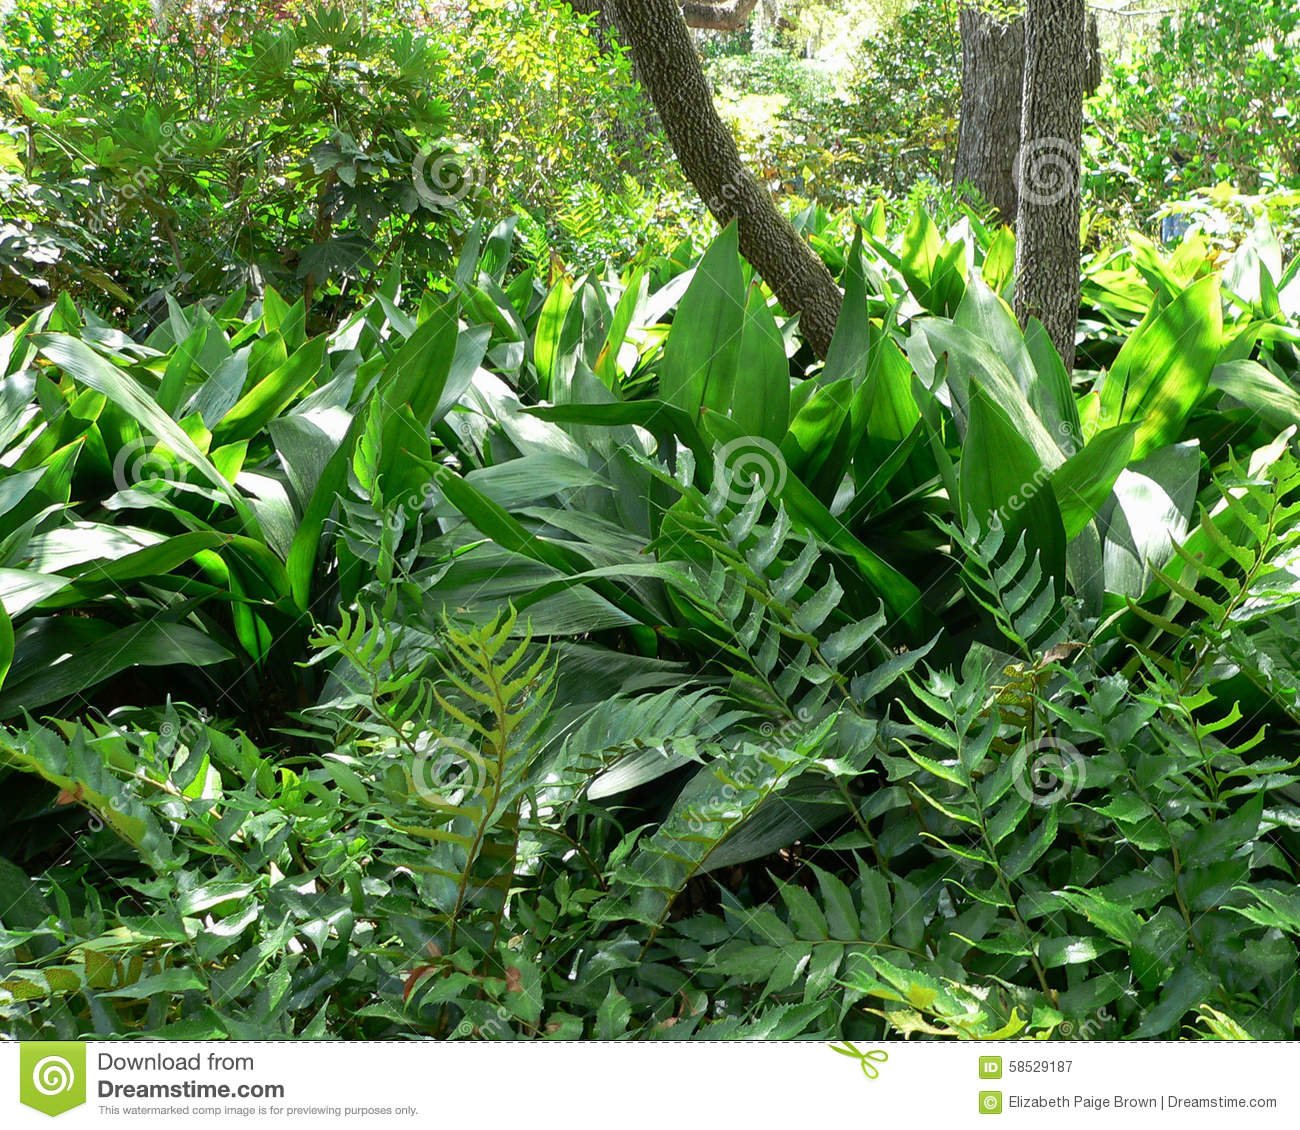 Garden foliage stock image. Image of morning, spot, brookgreen ...